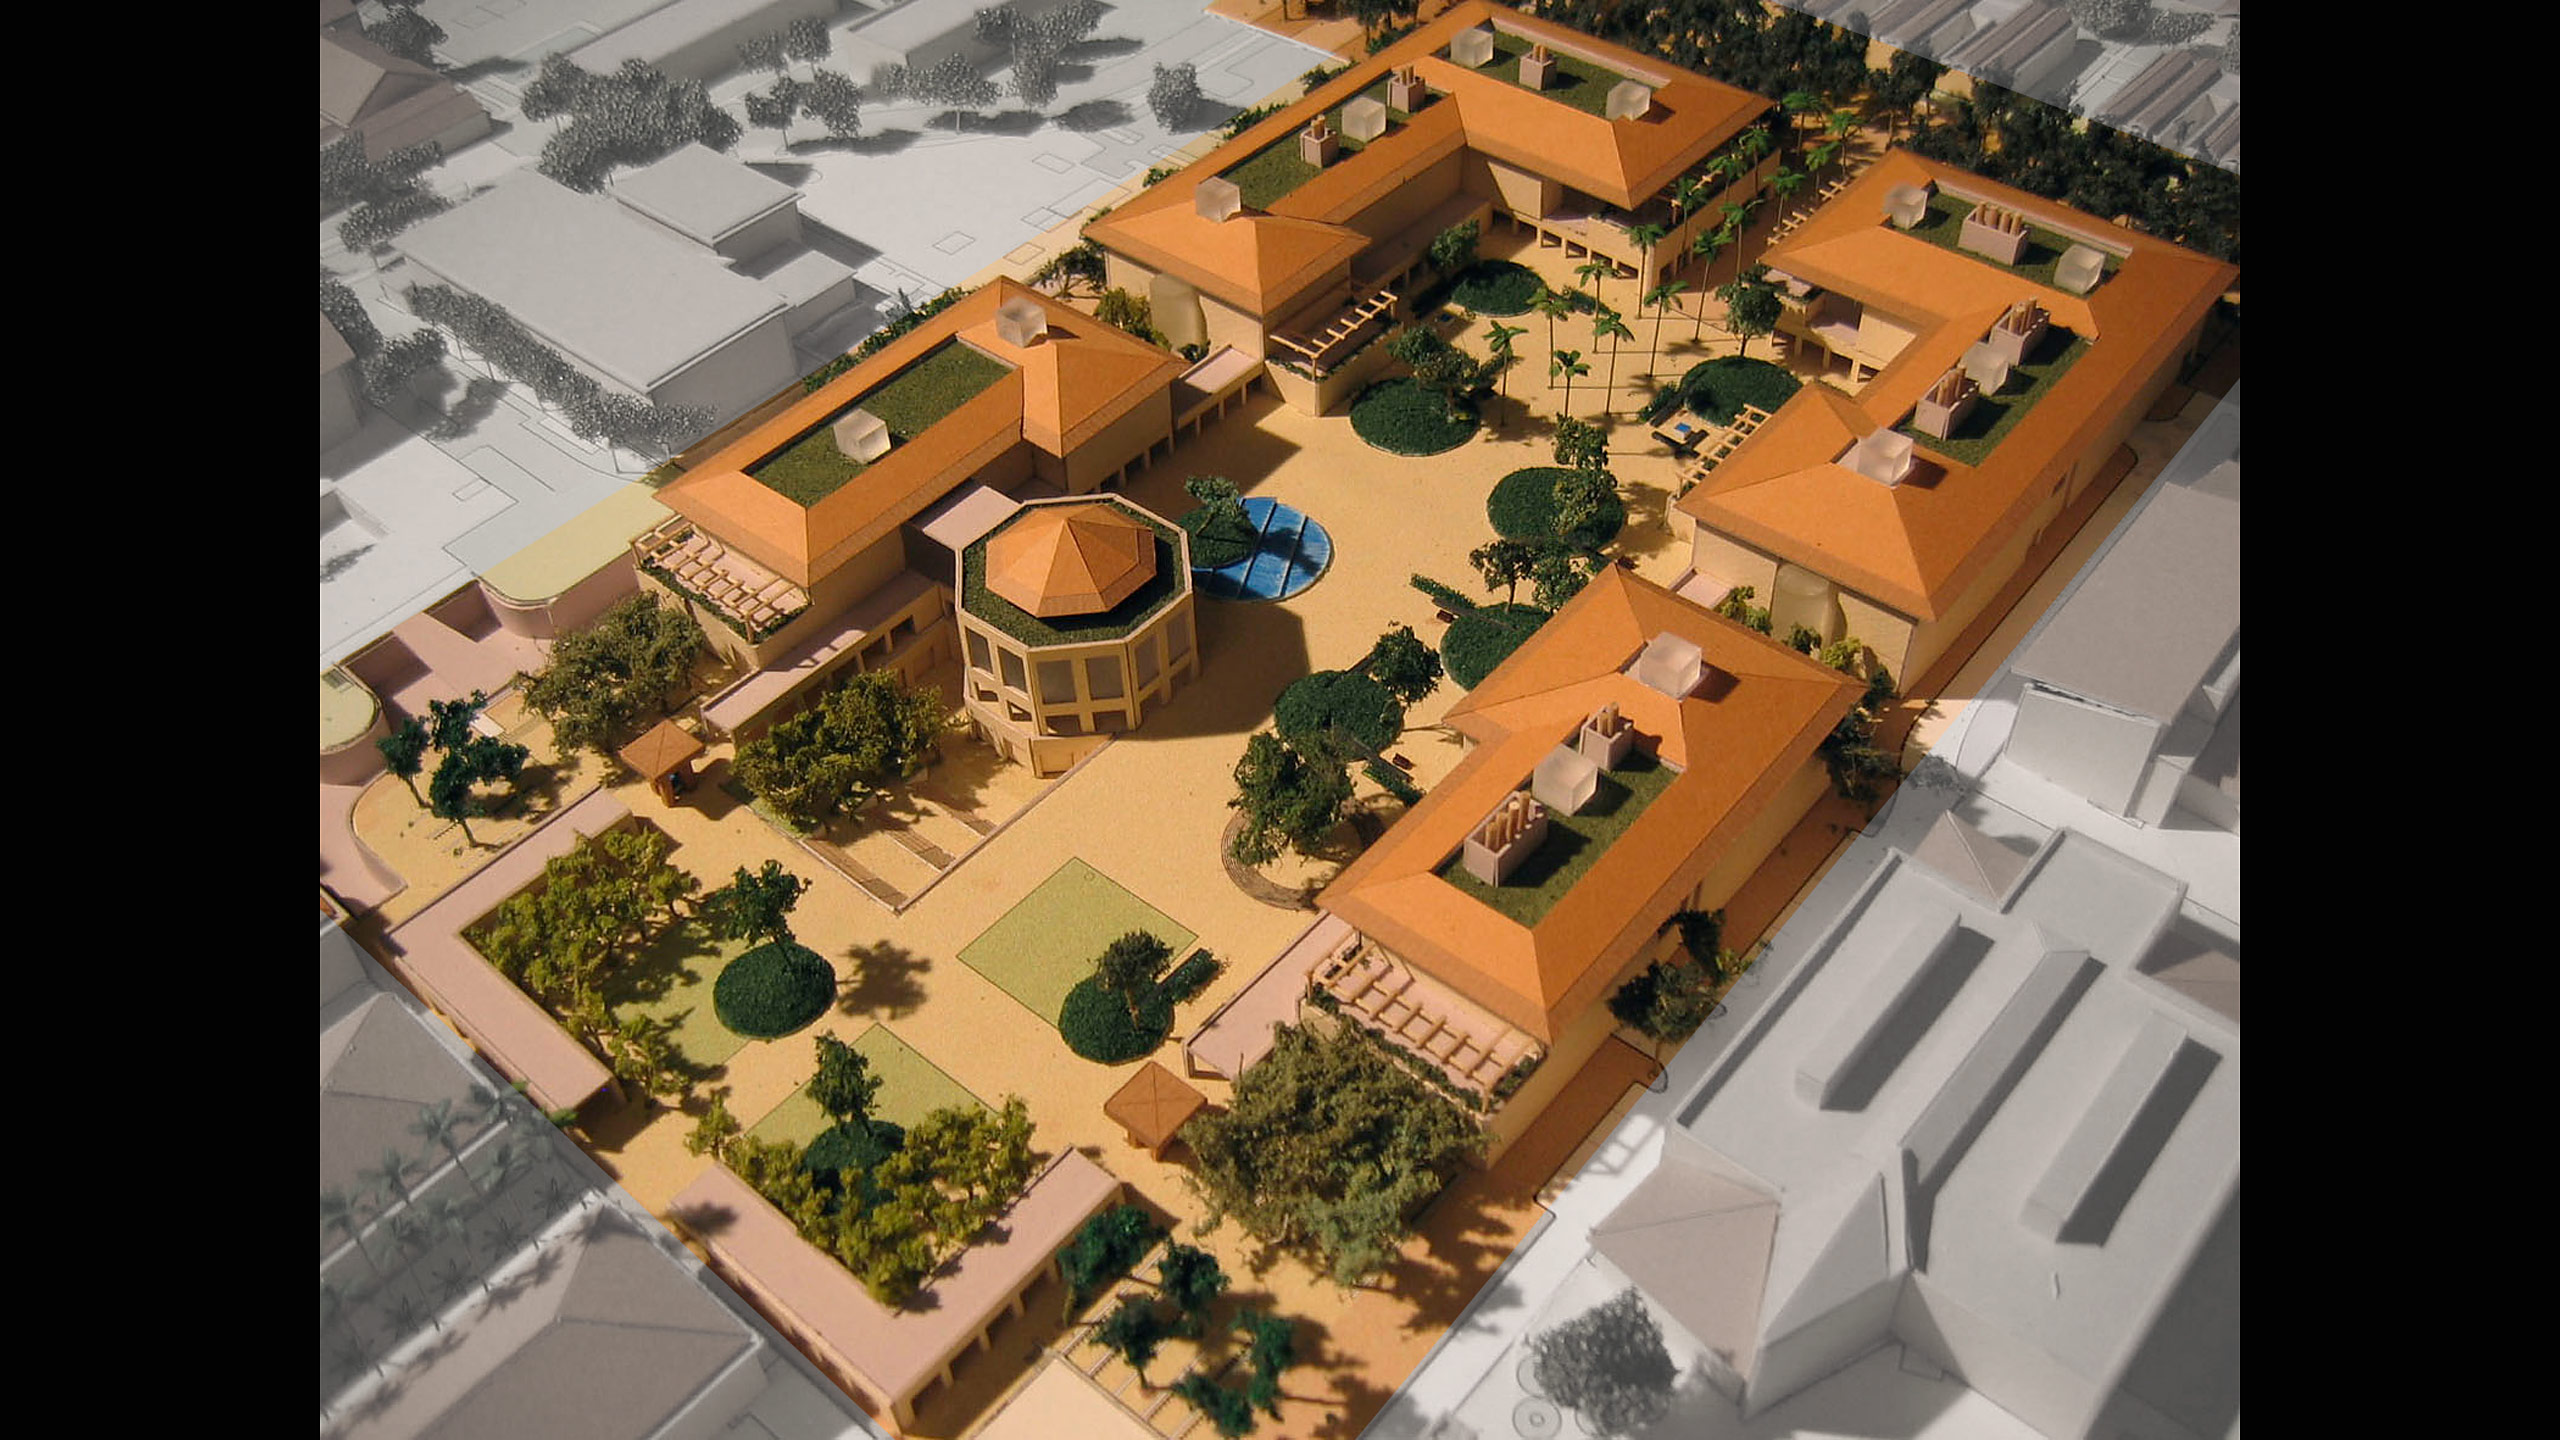 Science and Engineering Quad Master Plan and Design Guidelines at Stanford University / image 1